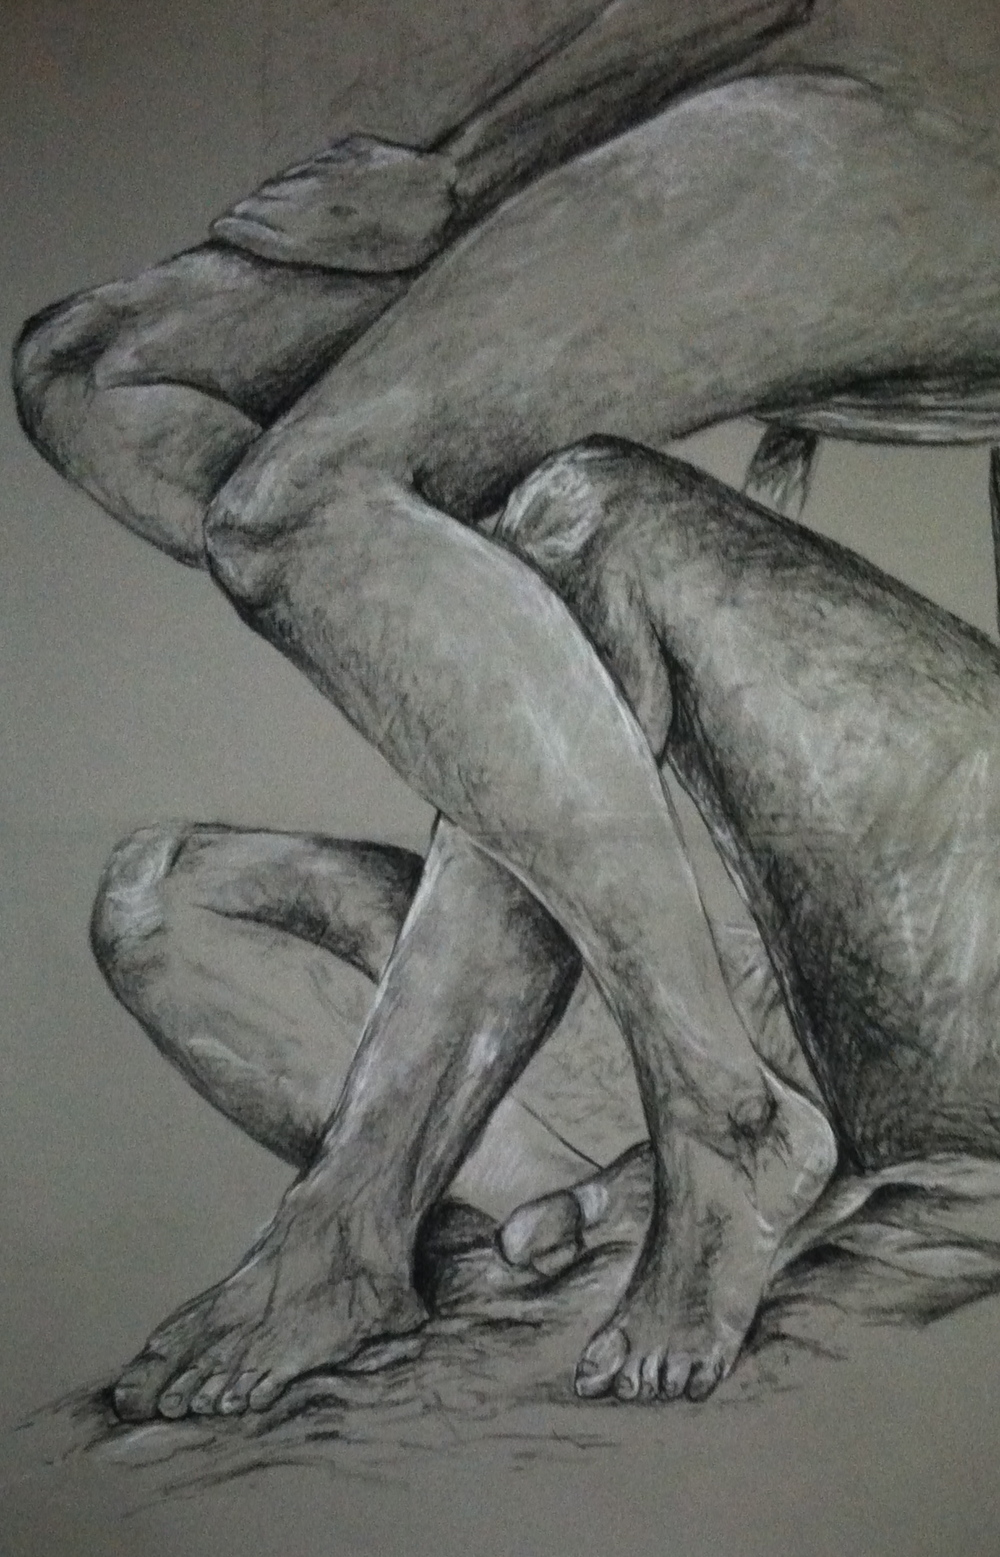 Heather Mawson, Intertwined, Charcoal on paper, Fall 2013, 36%22x48%22.jpg